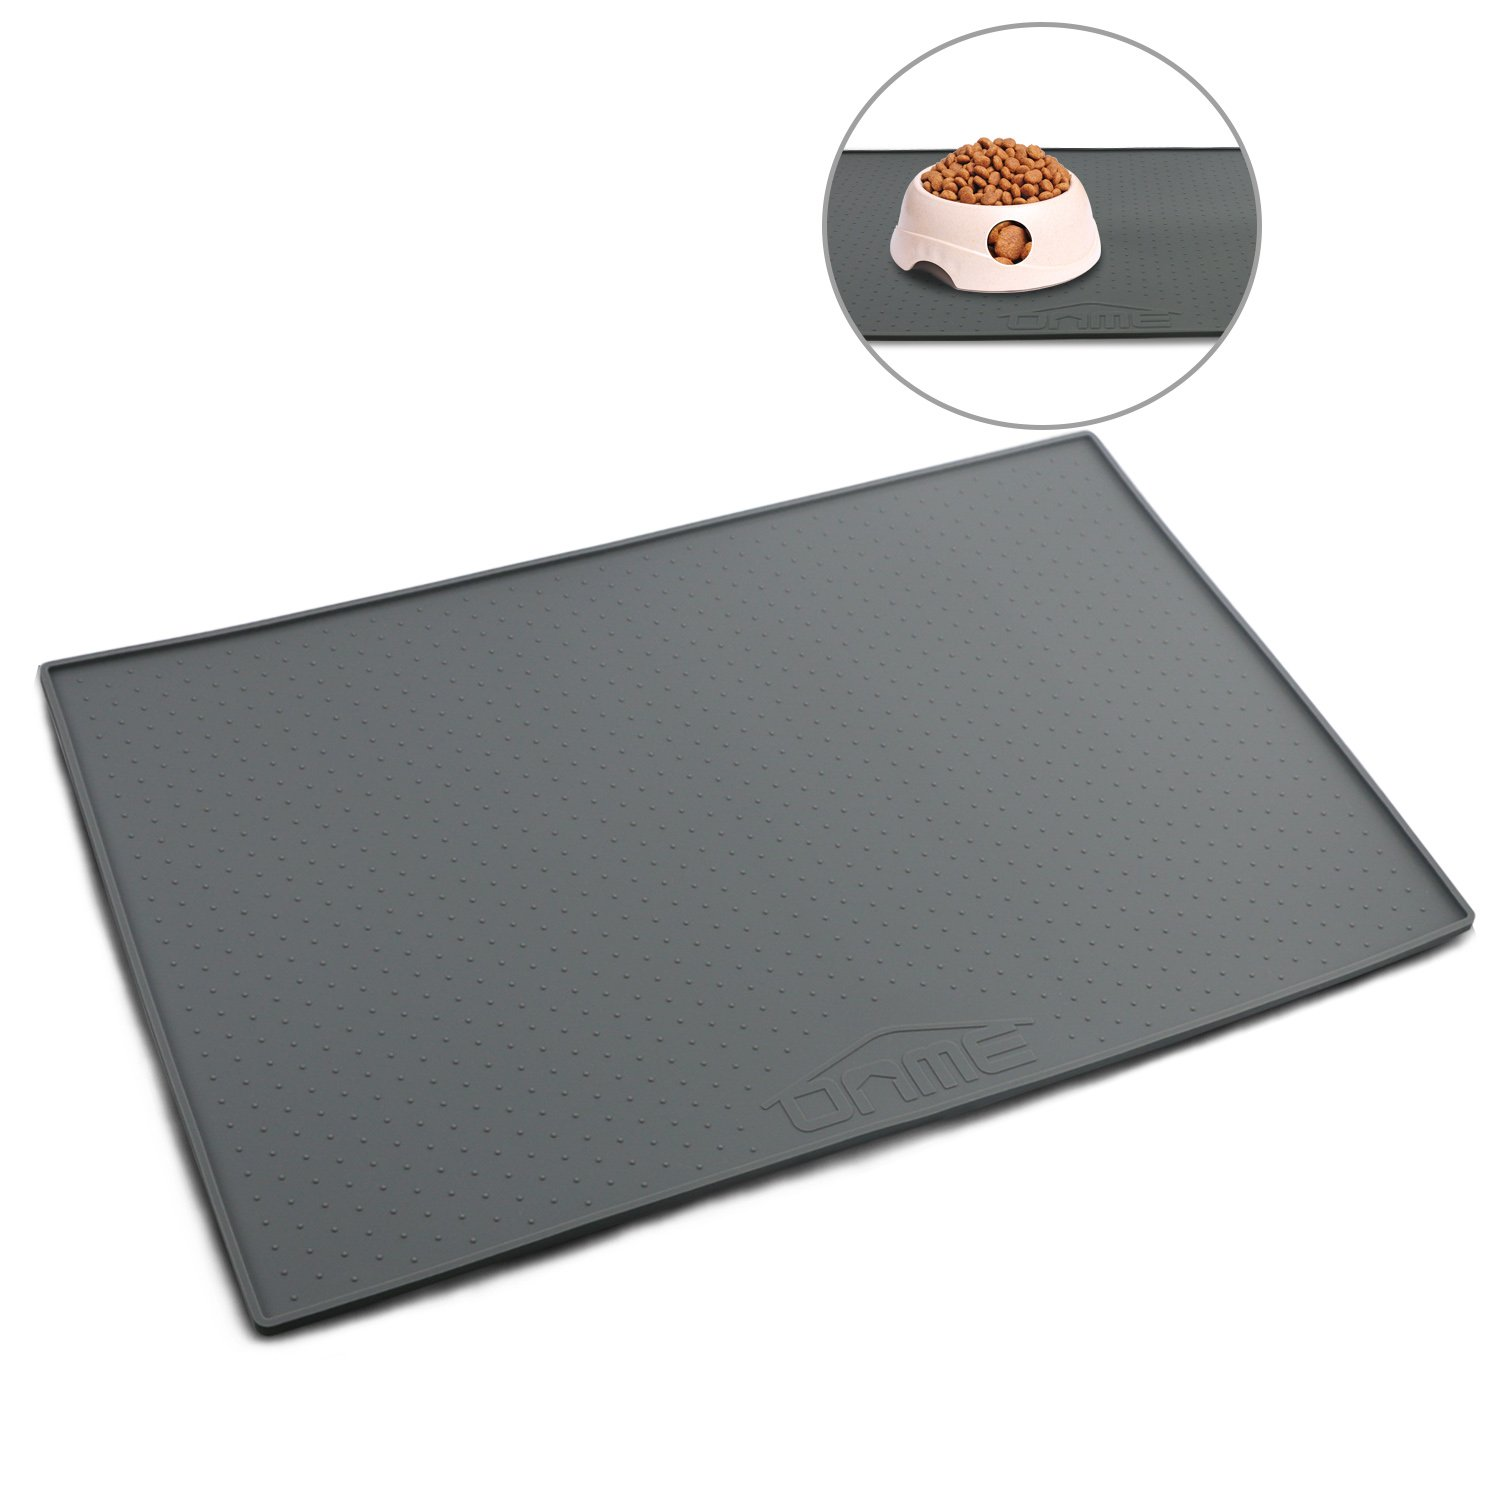 ONME Dog Feeding Mat, FDA Grade Silicone Waterproof Pet Food Mat, Non Slip Dog Bowl Placemat [ 18.5 11.8 in & 23.615.7in ]